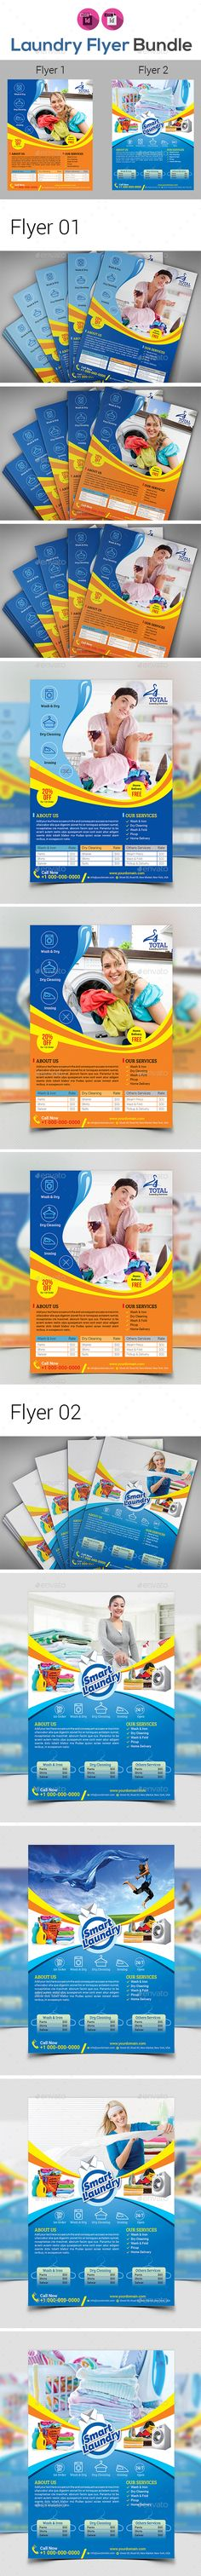 buy laundry dry cleaning services flyer bundle by on graphicriver features flyer 01 size bleed one design two color variationsblue orange files